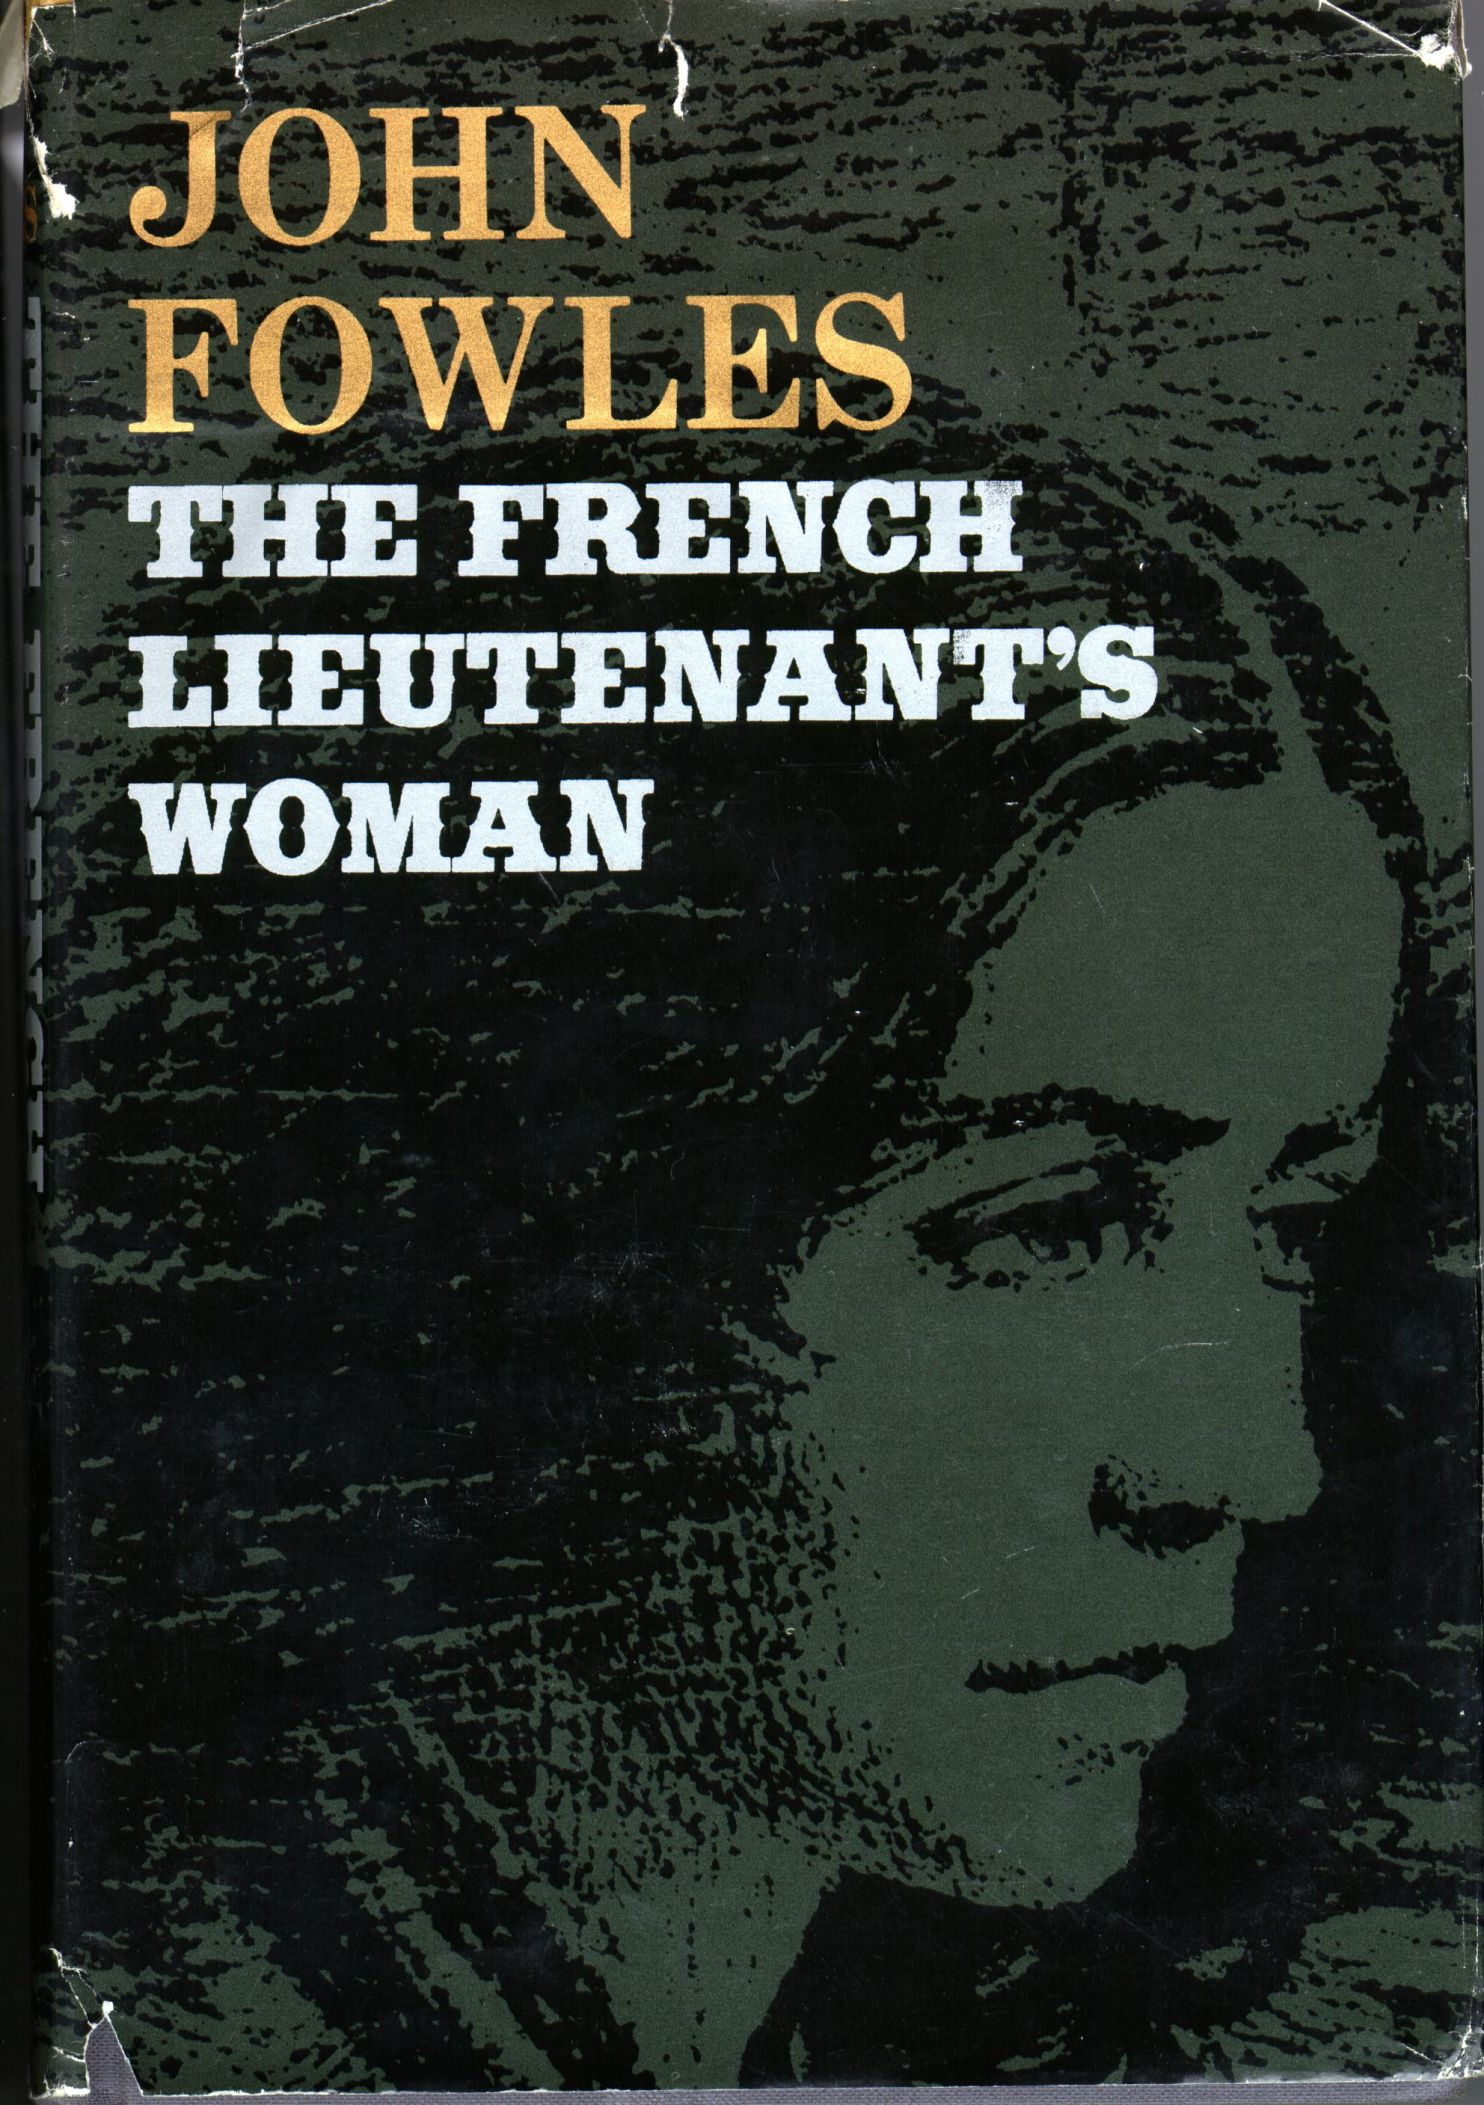 French Lieutenants Woman